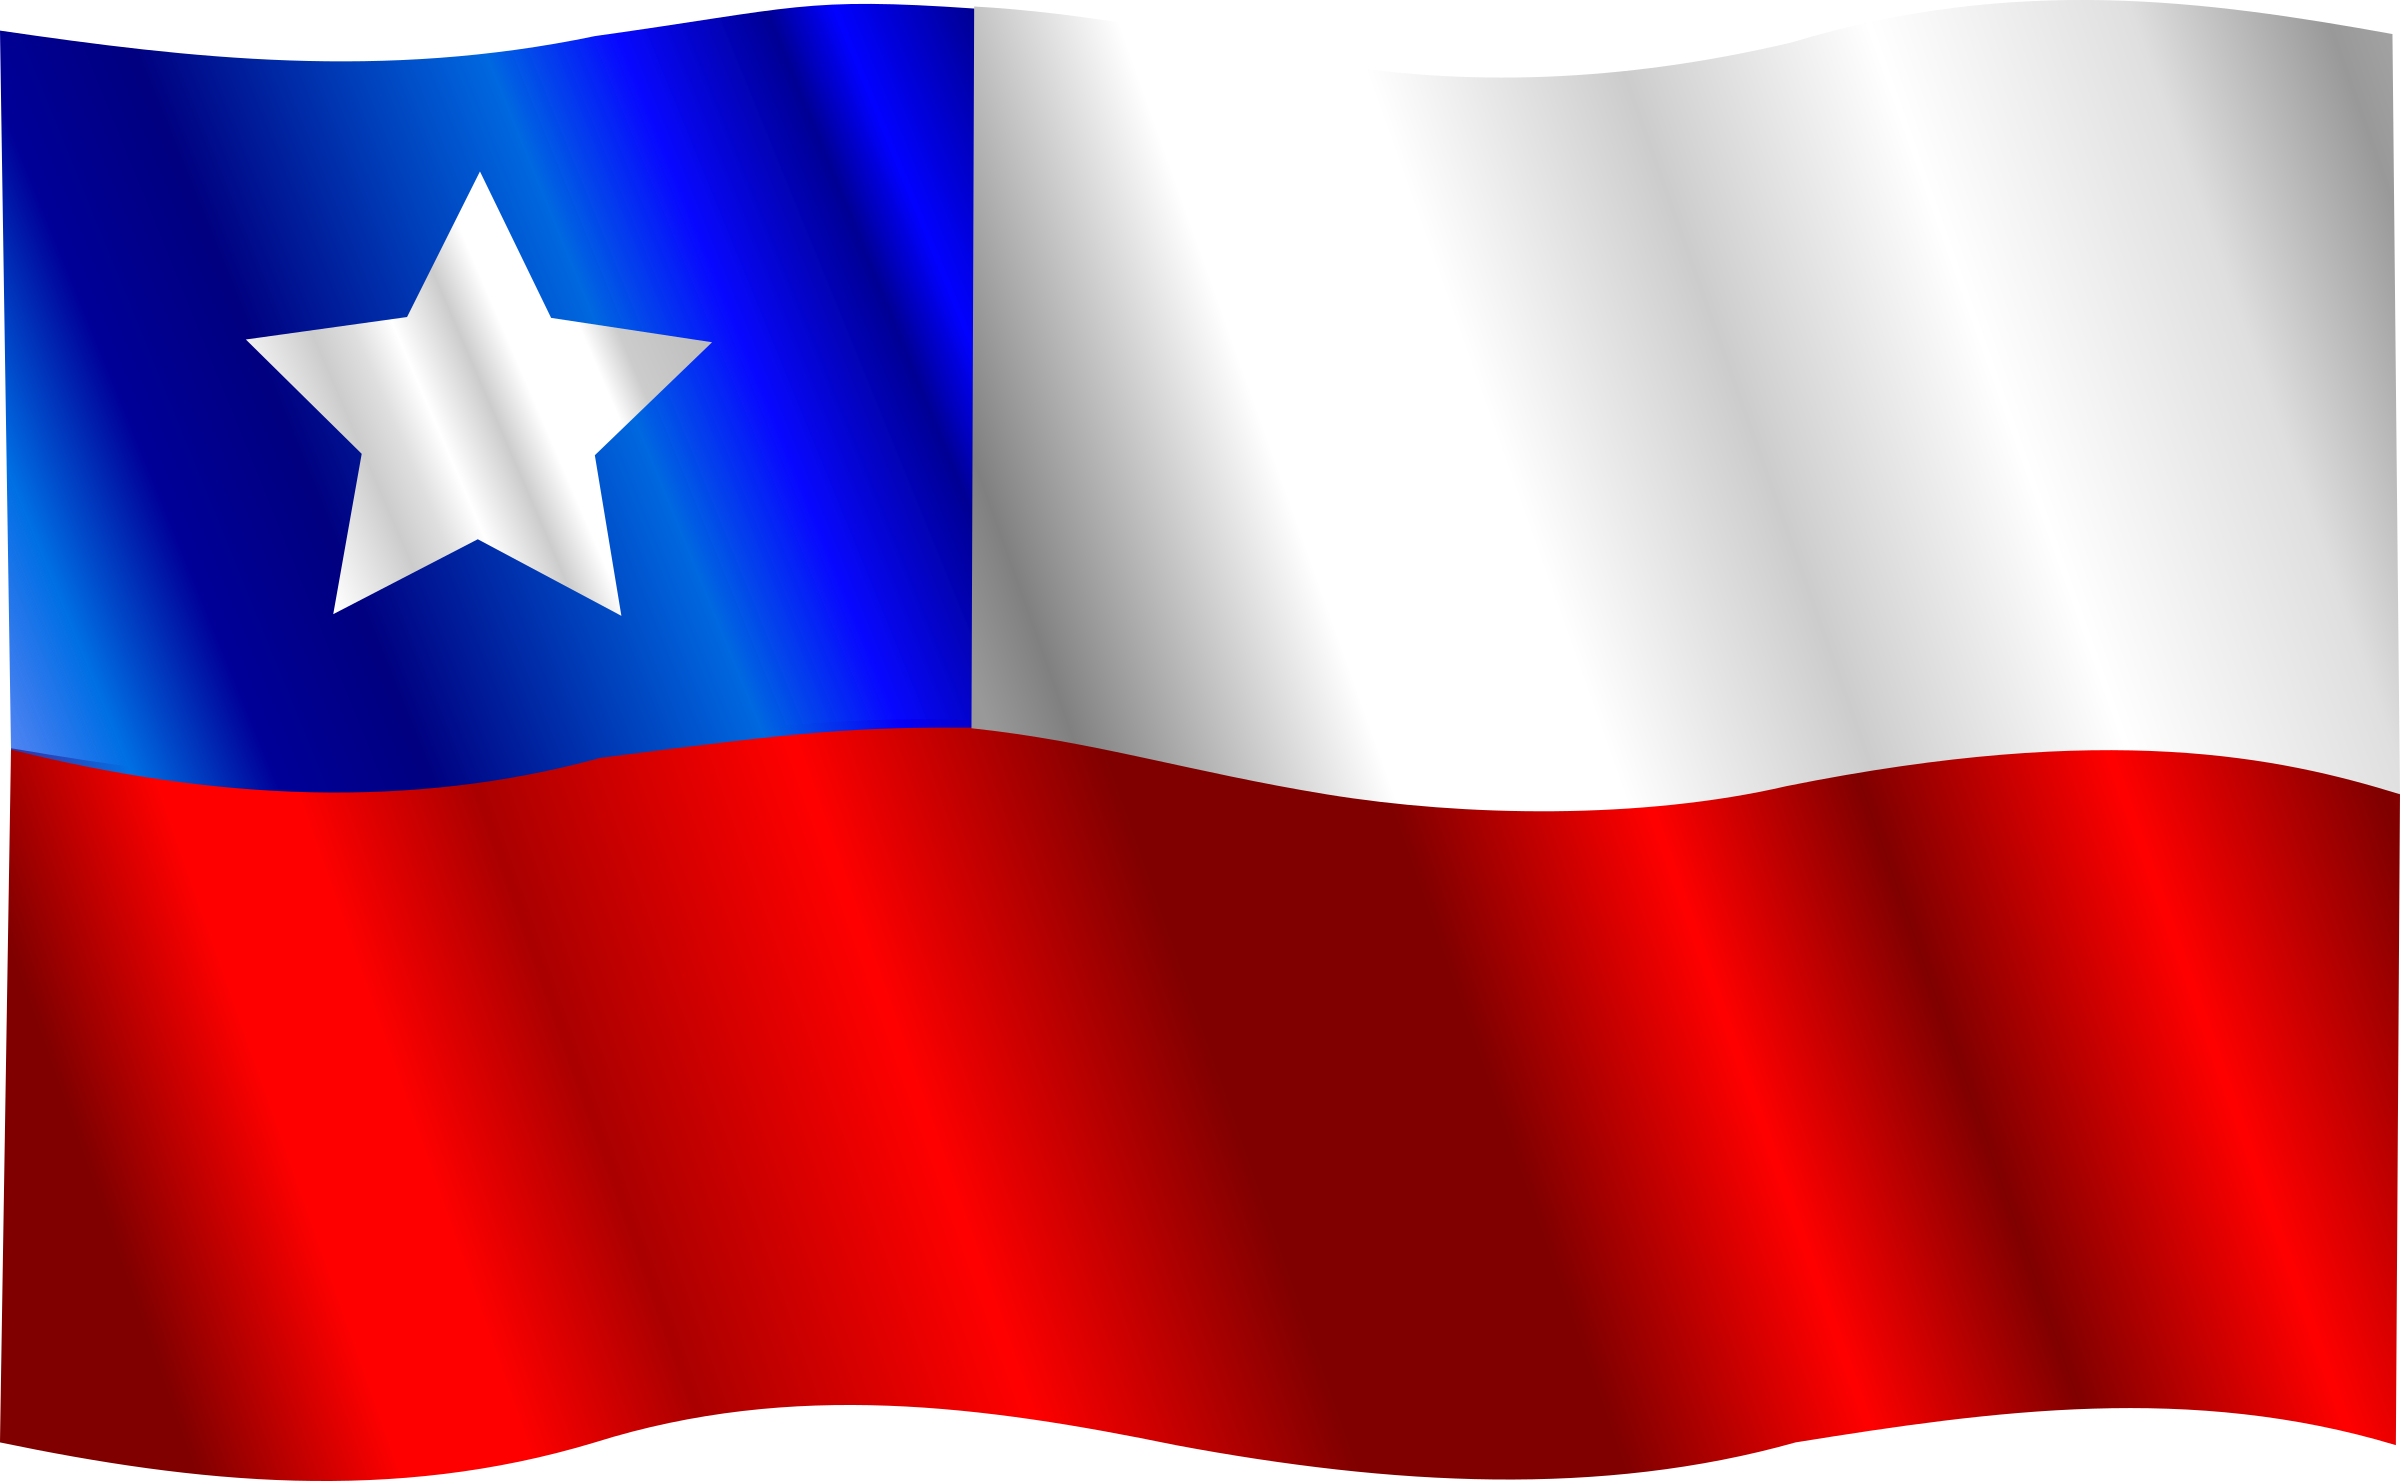 Chilean Flag by Merlin2525